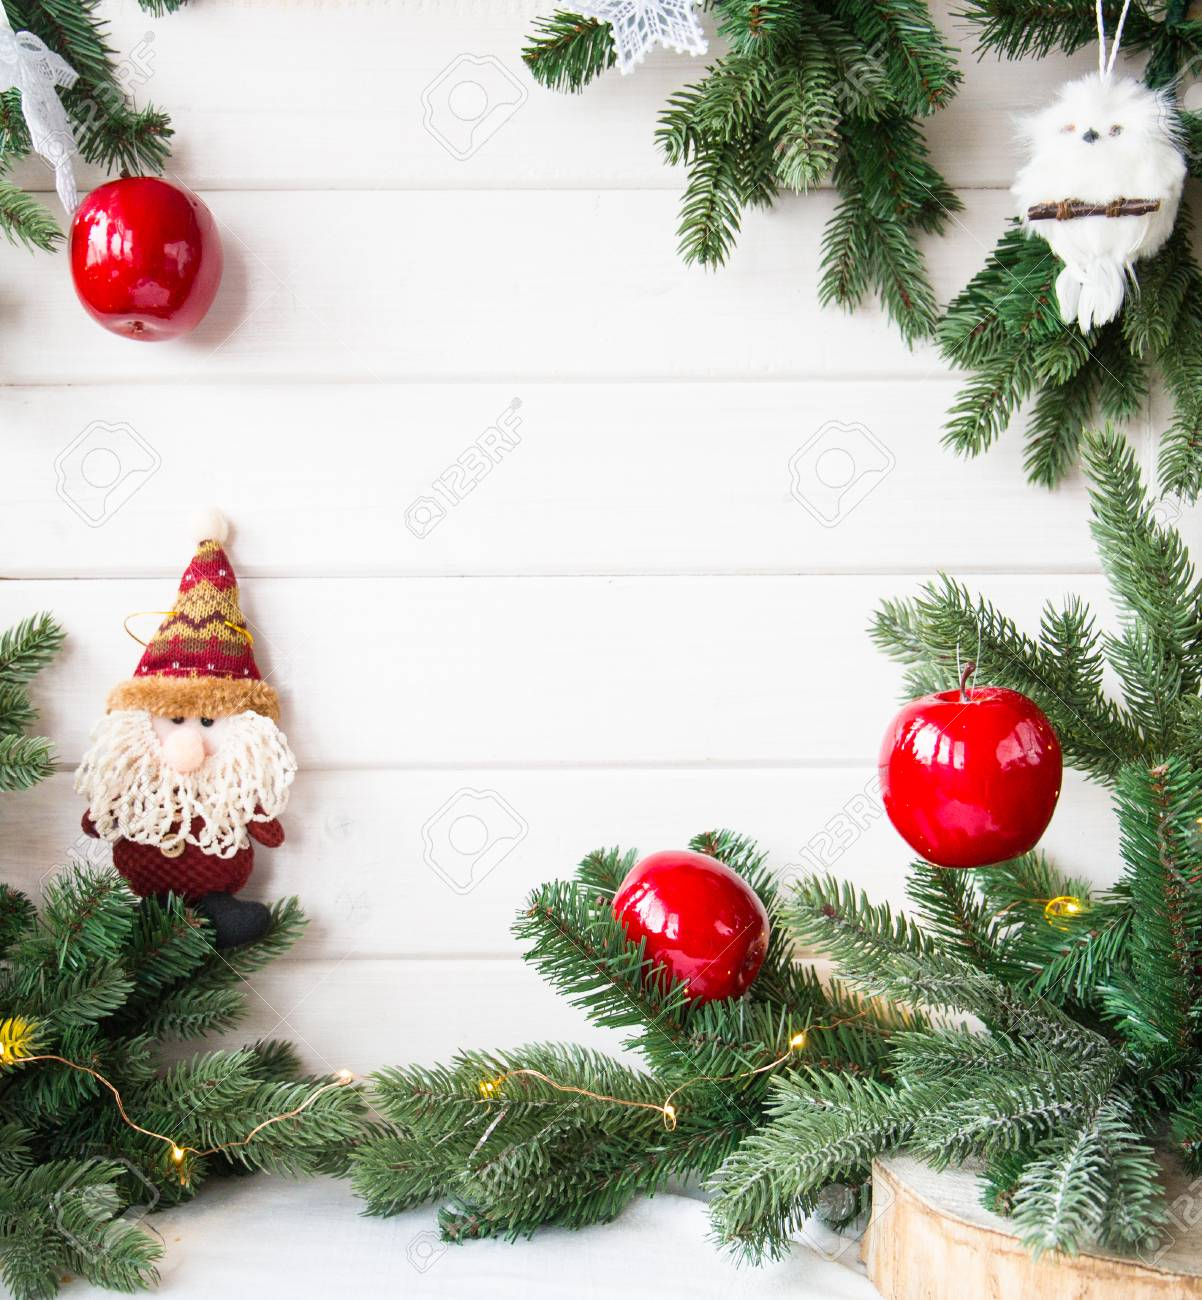 Christmas Tree Branches And Red Apples On White Wooden Background Stock Photo Picture And Royalty Free Image Image 90508170